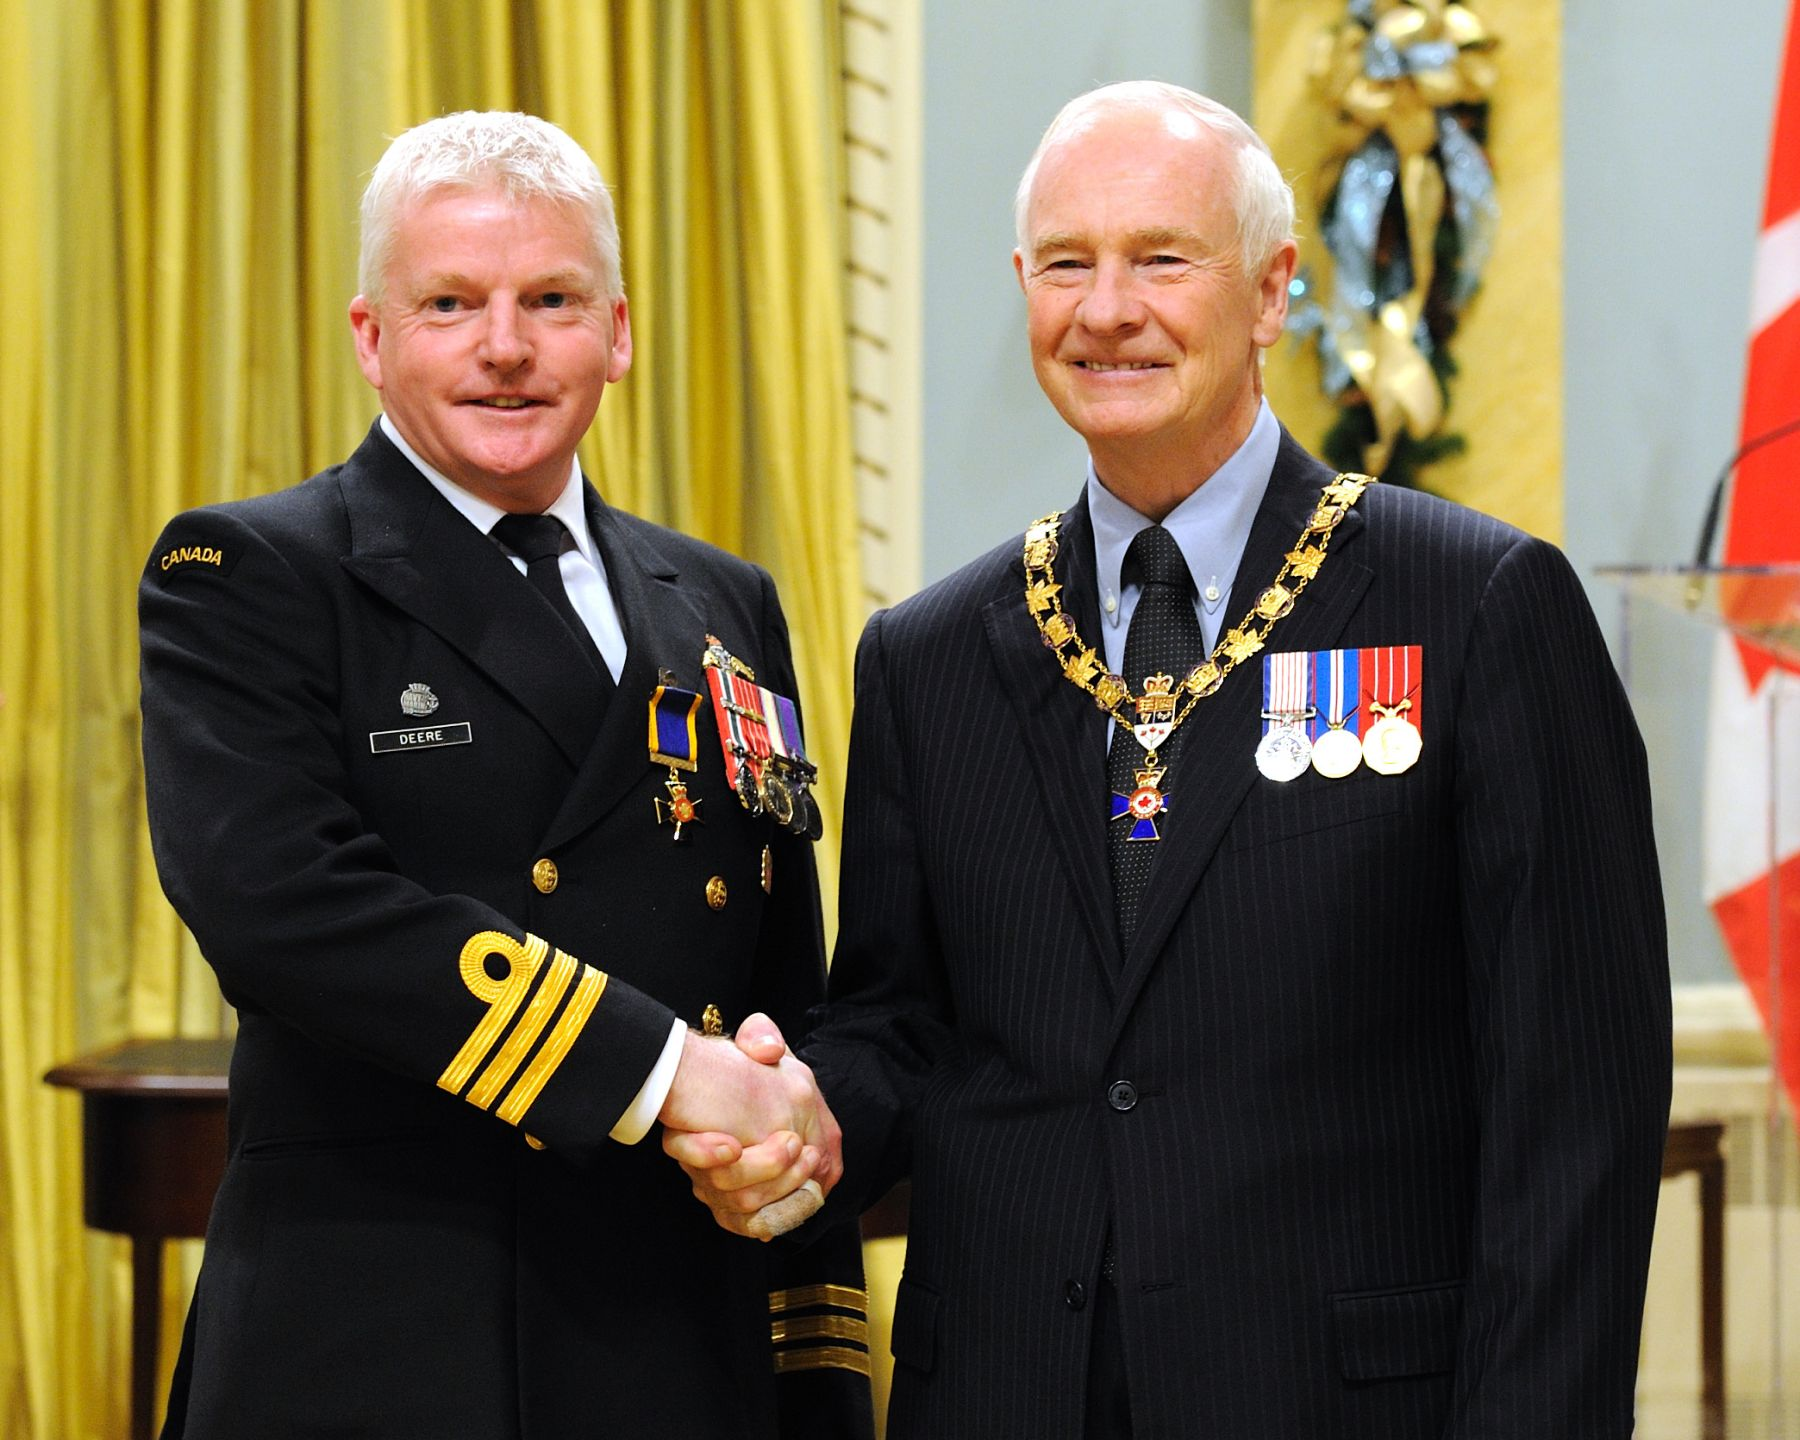 His Excellency presented the Order of Military Merit at the Officer level (O.M.M.) to Commander Christopher Deere, O.M.M., C.D., National Defence Headquarters, Chief of the Maritime Staff, Ottawa, Ontario.